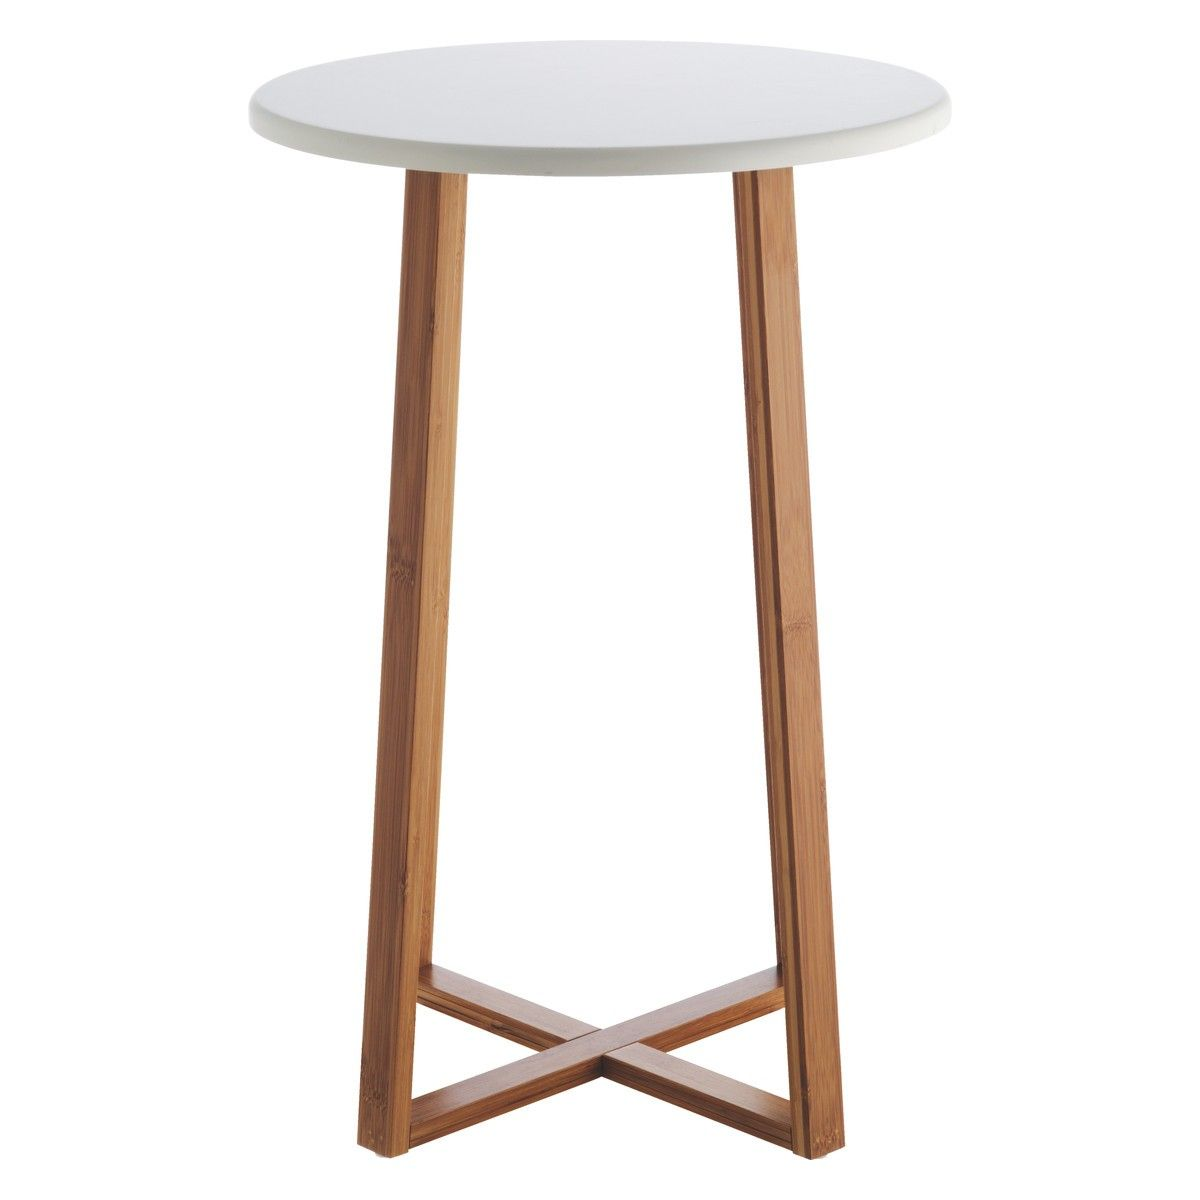 Drew bamboo and white lacquer tall side table entry tables drew bamboo and white lacquer tall side table geotapseo Images